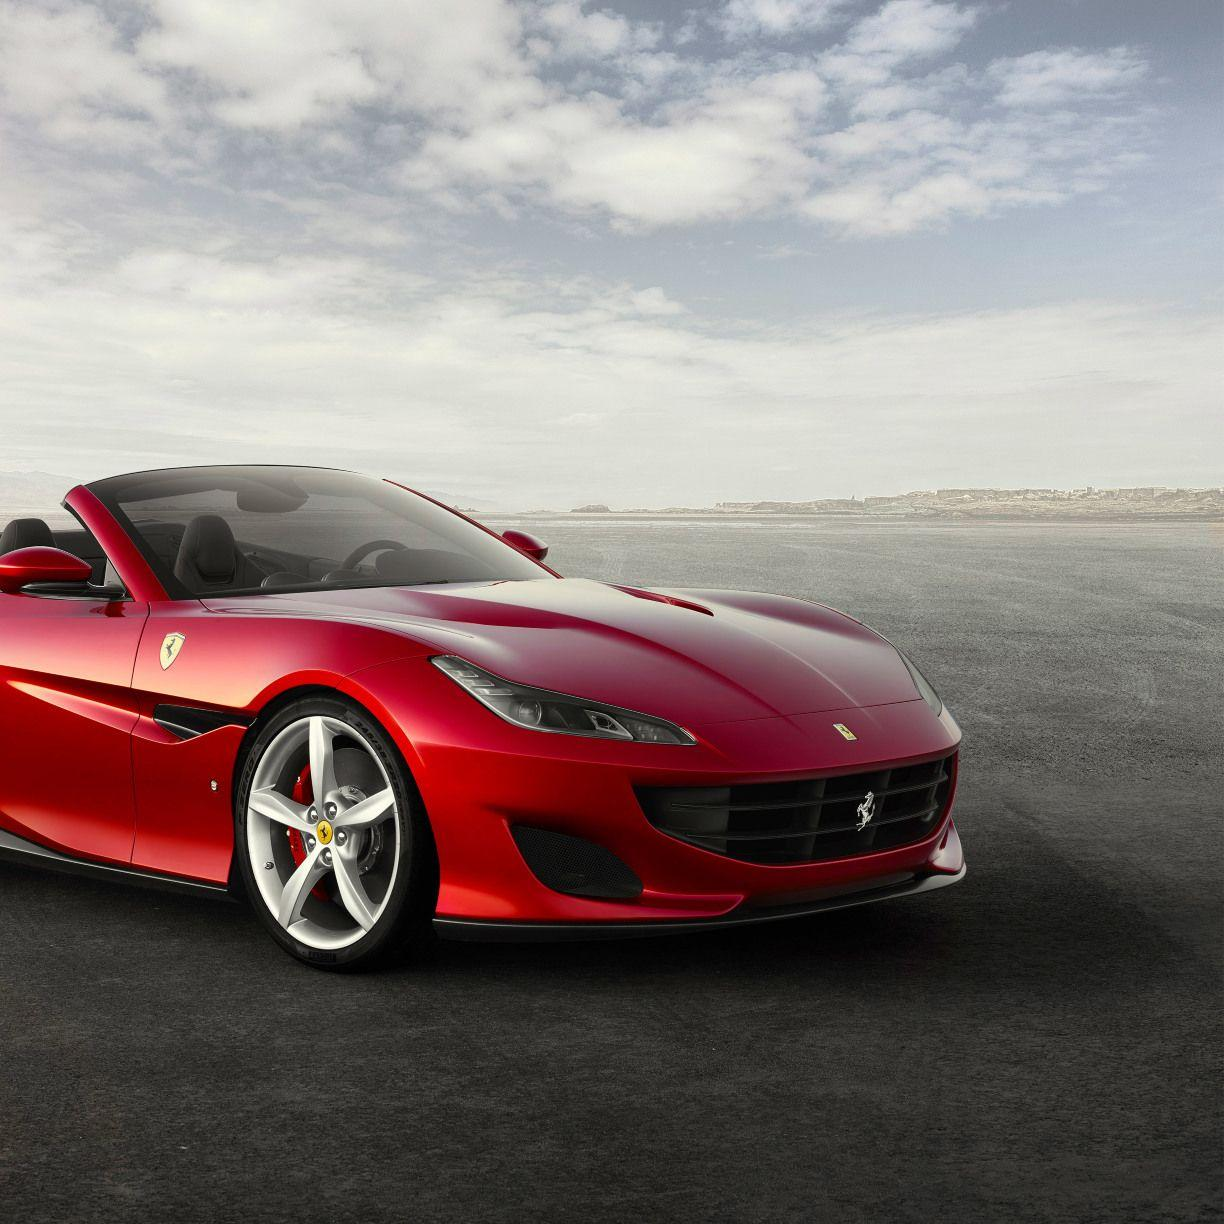 Ferrari Portofino 2018 Wallpapers